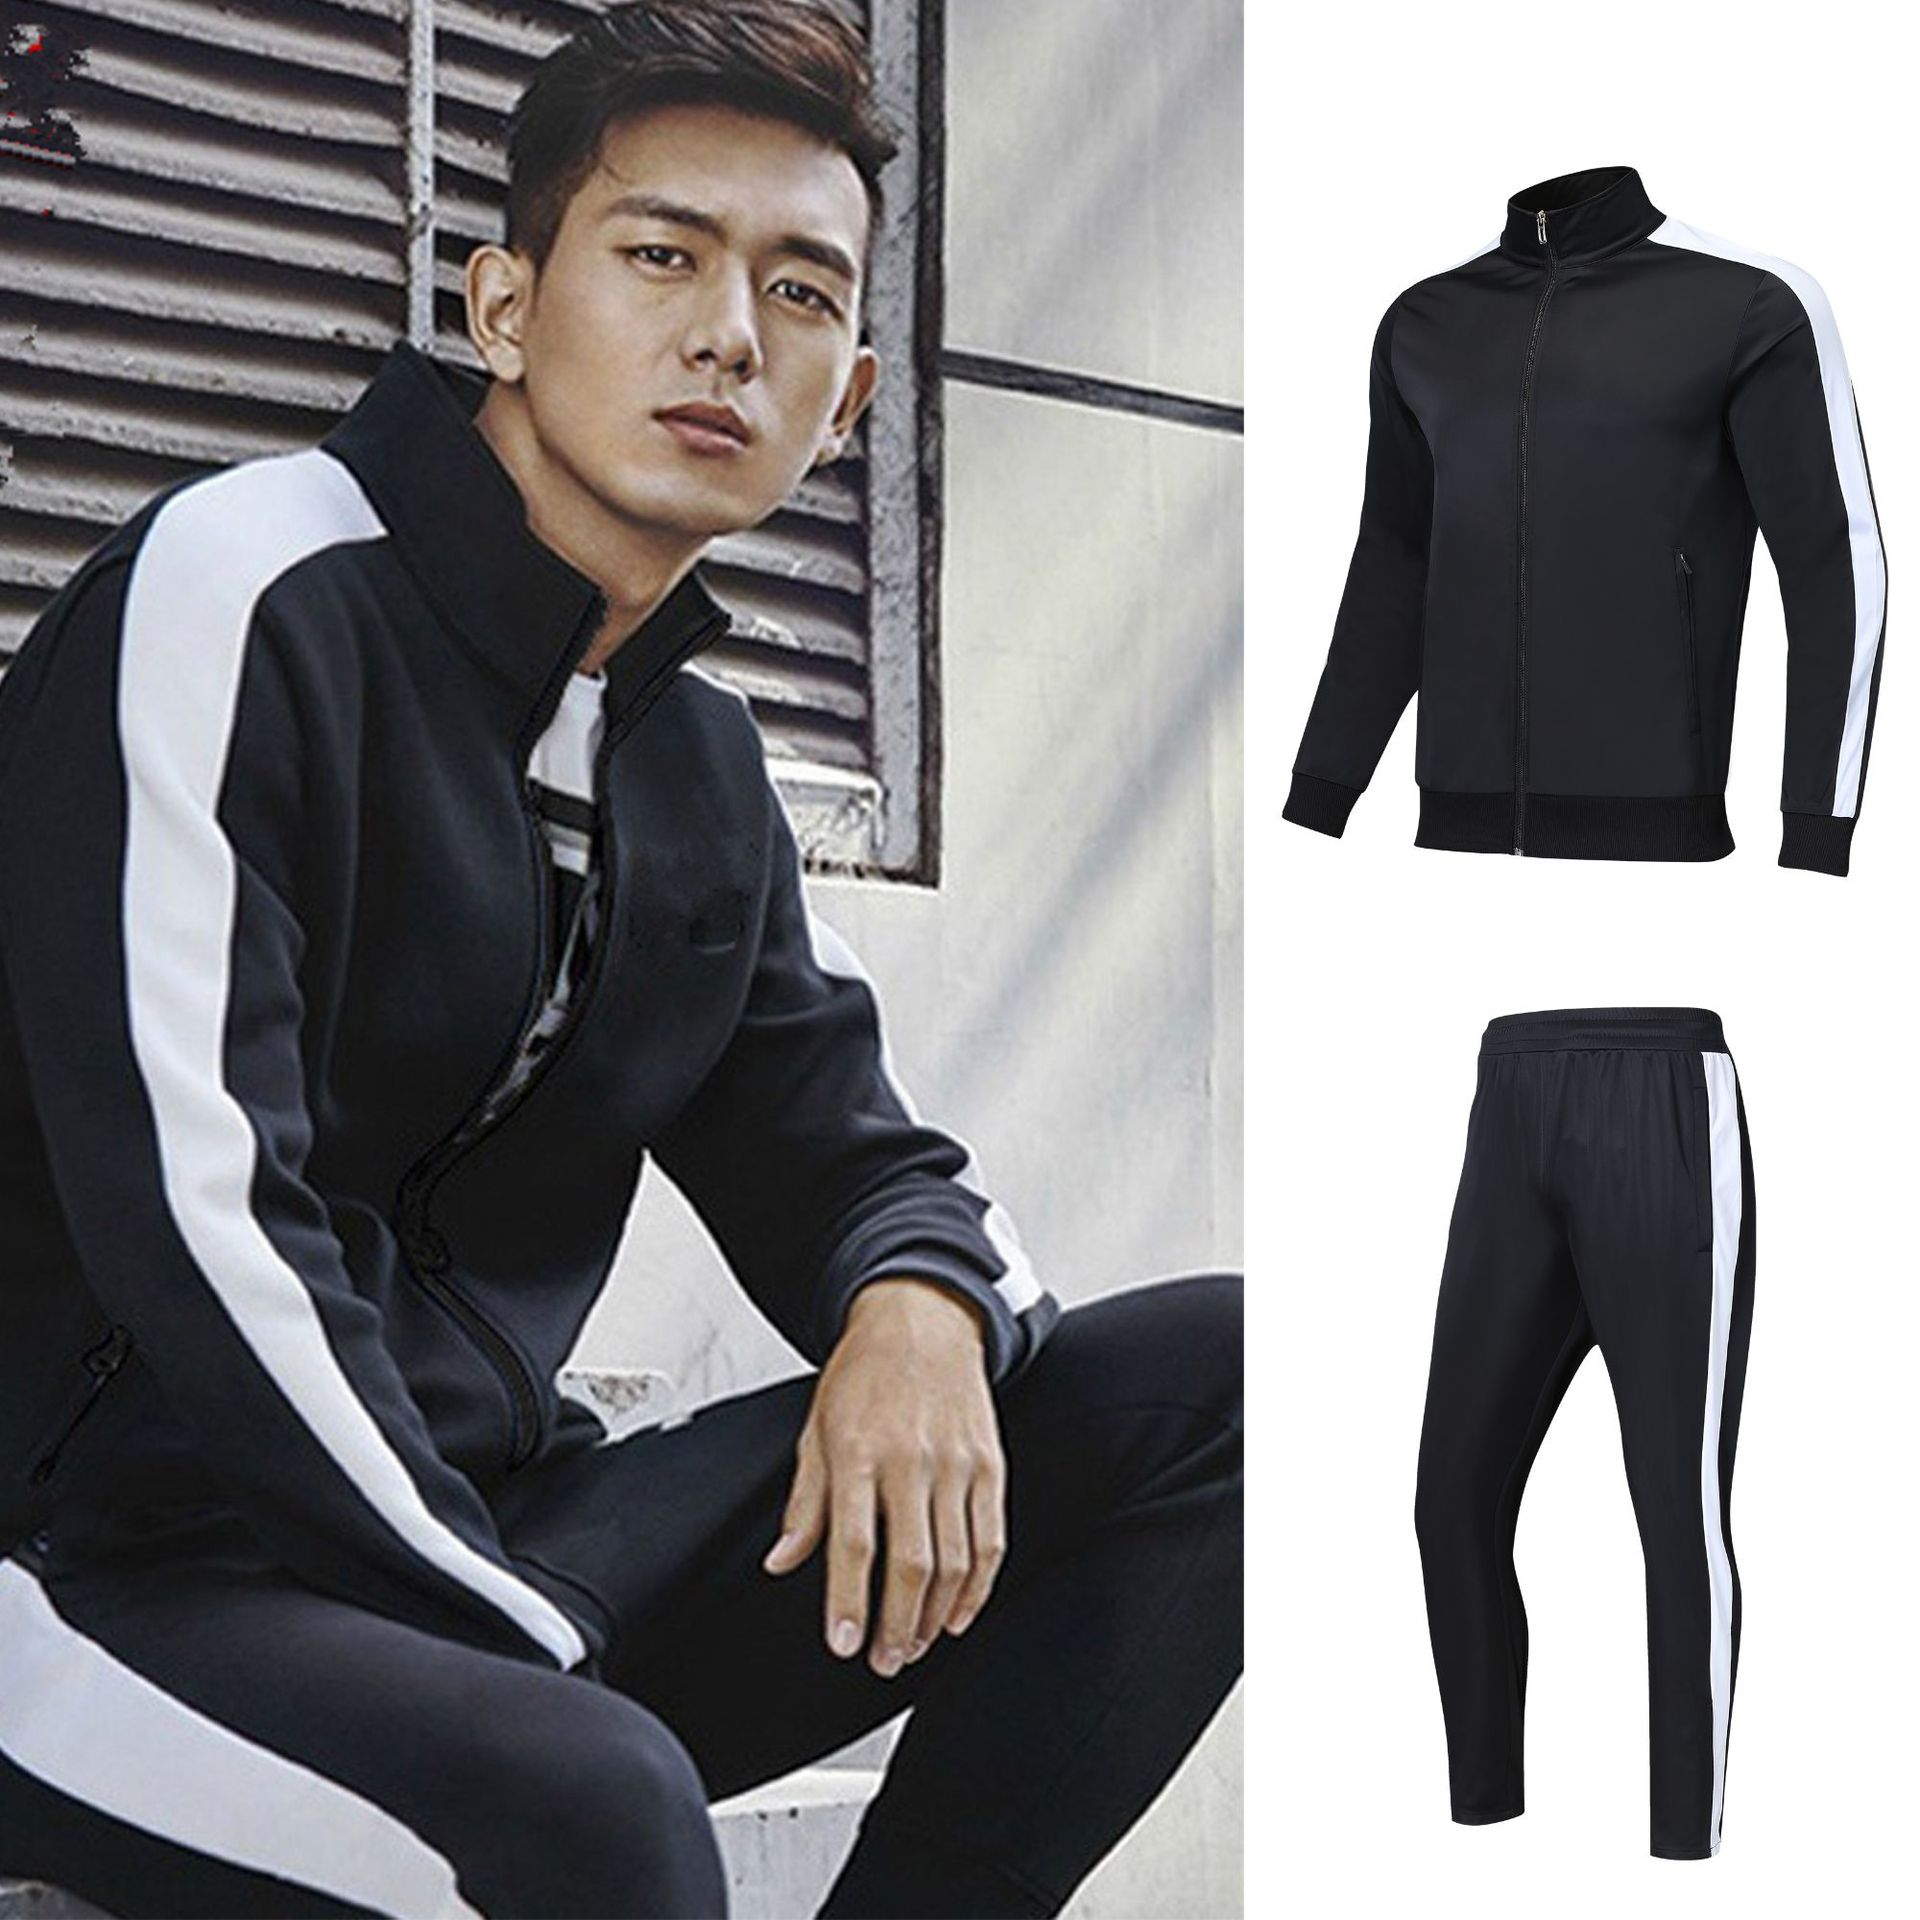 Adult Kids Celebrity Style Casual Sports Game Team Customizable Ball Uniform Running Breathable Autumn And Winter Long Sleeve Tr